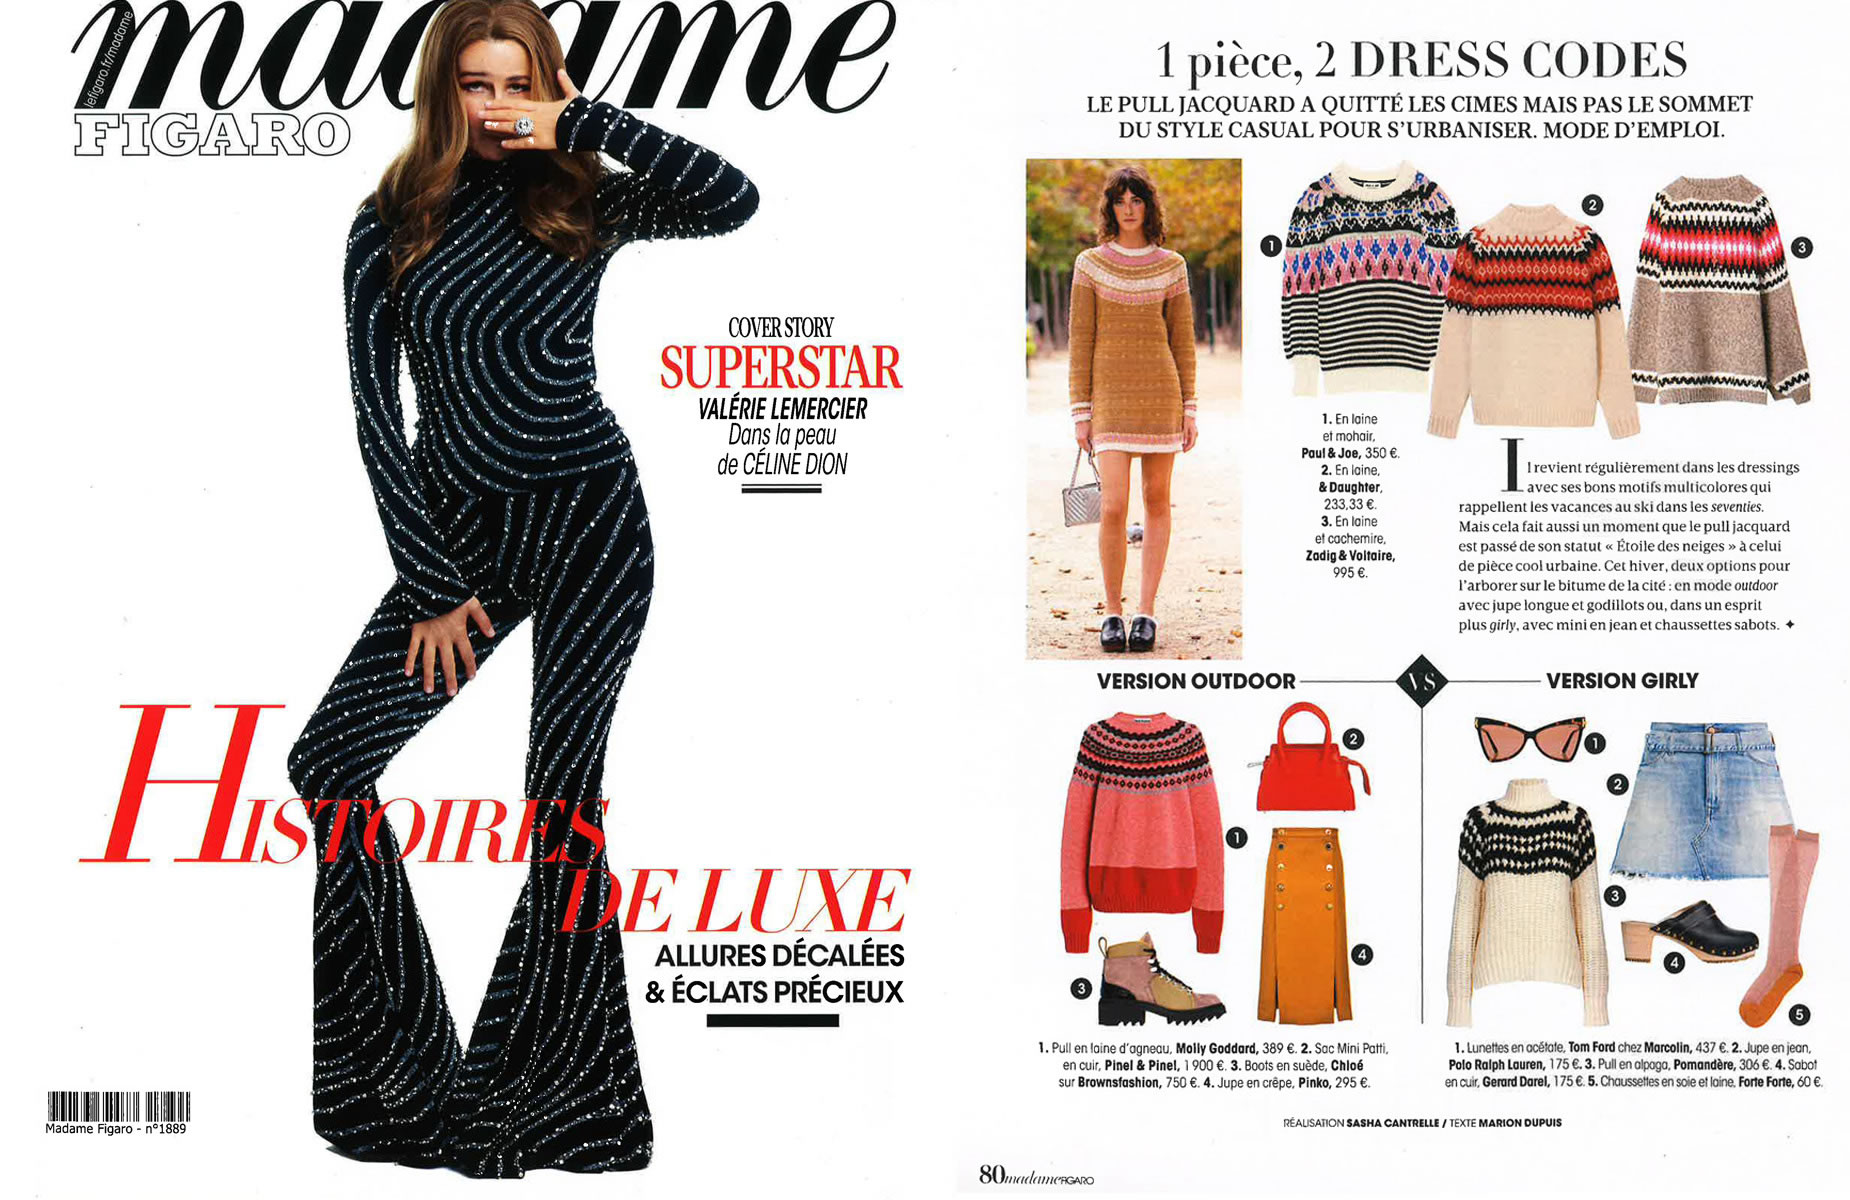 PINEL et PINEL in Madame Figaro - 2020/11